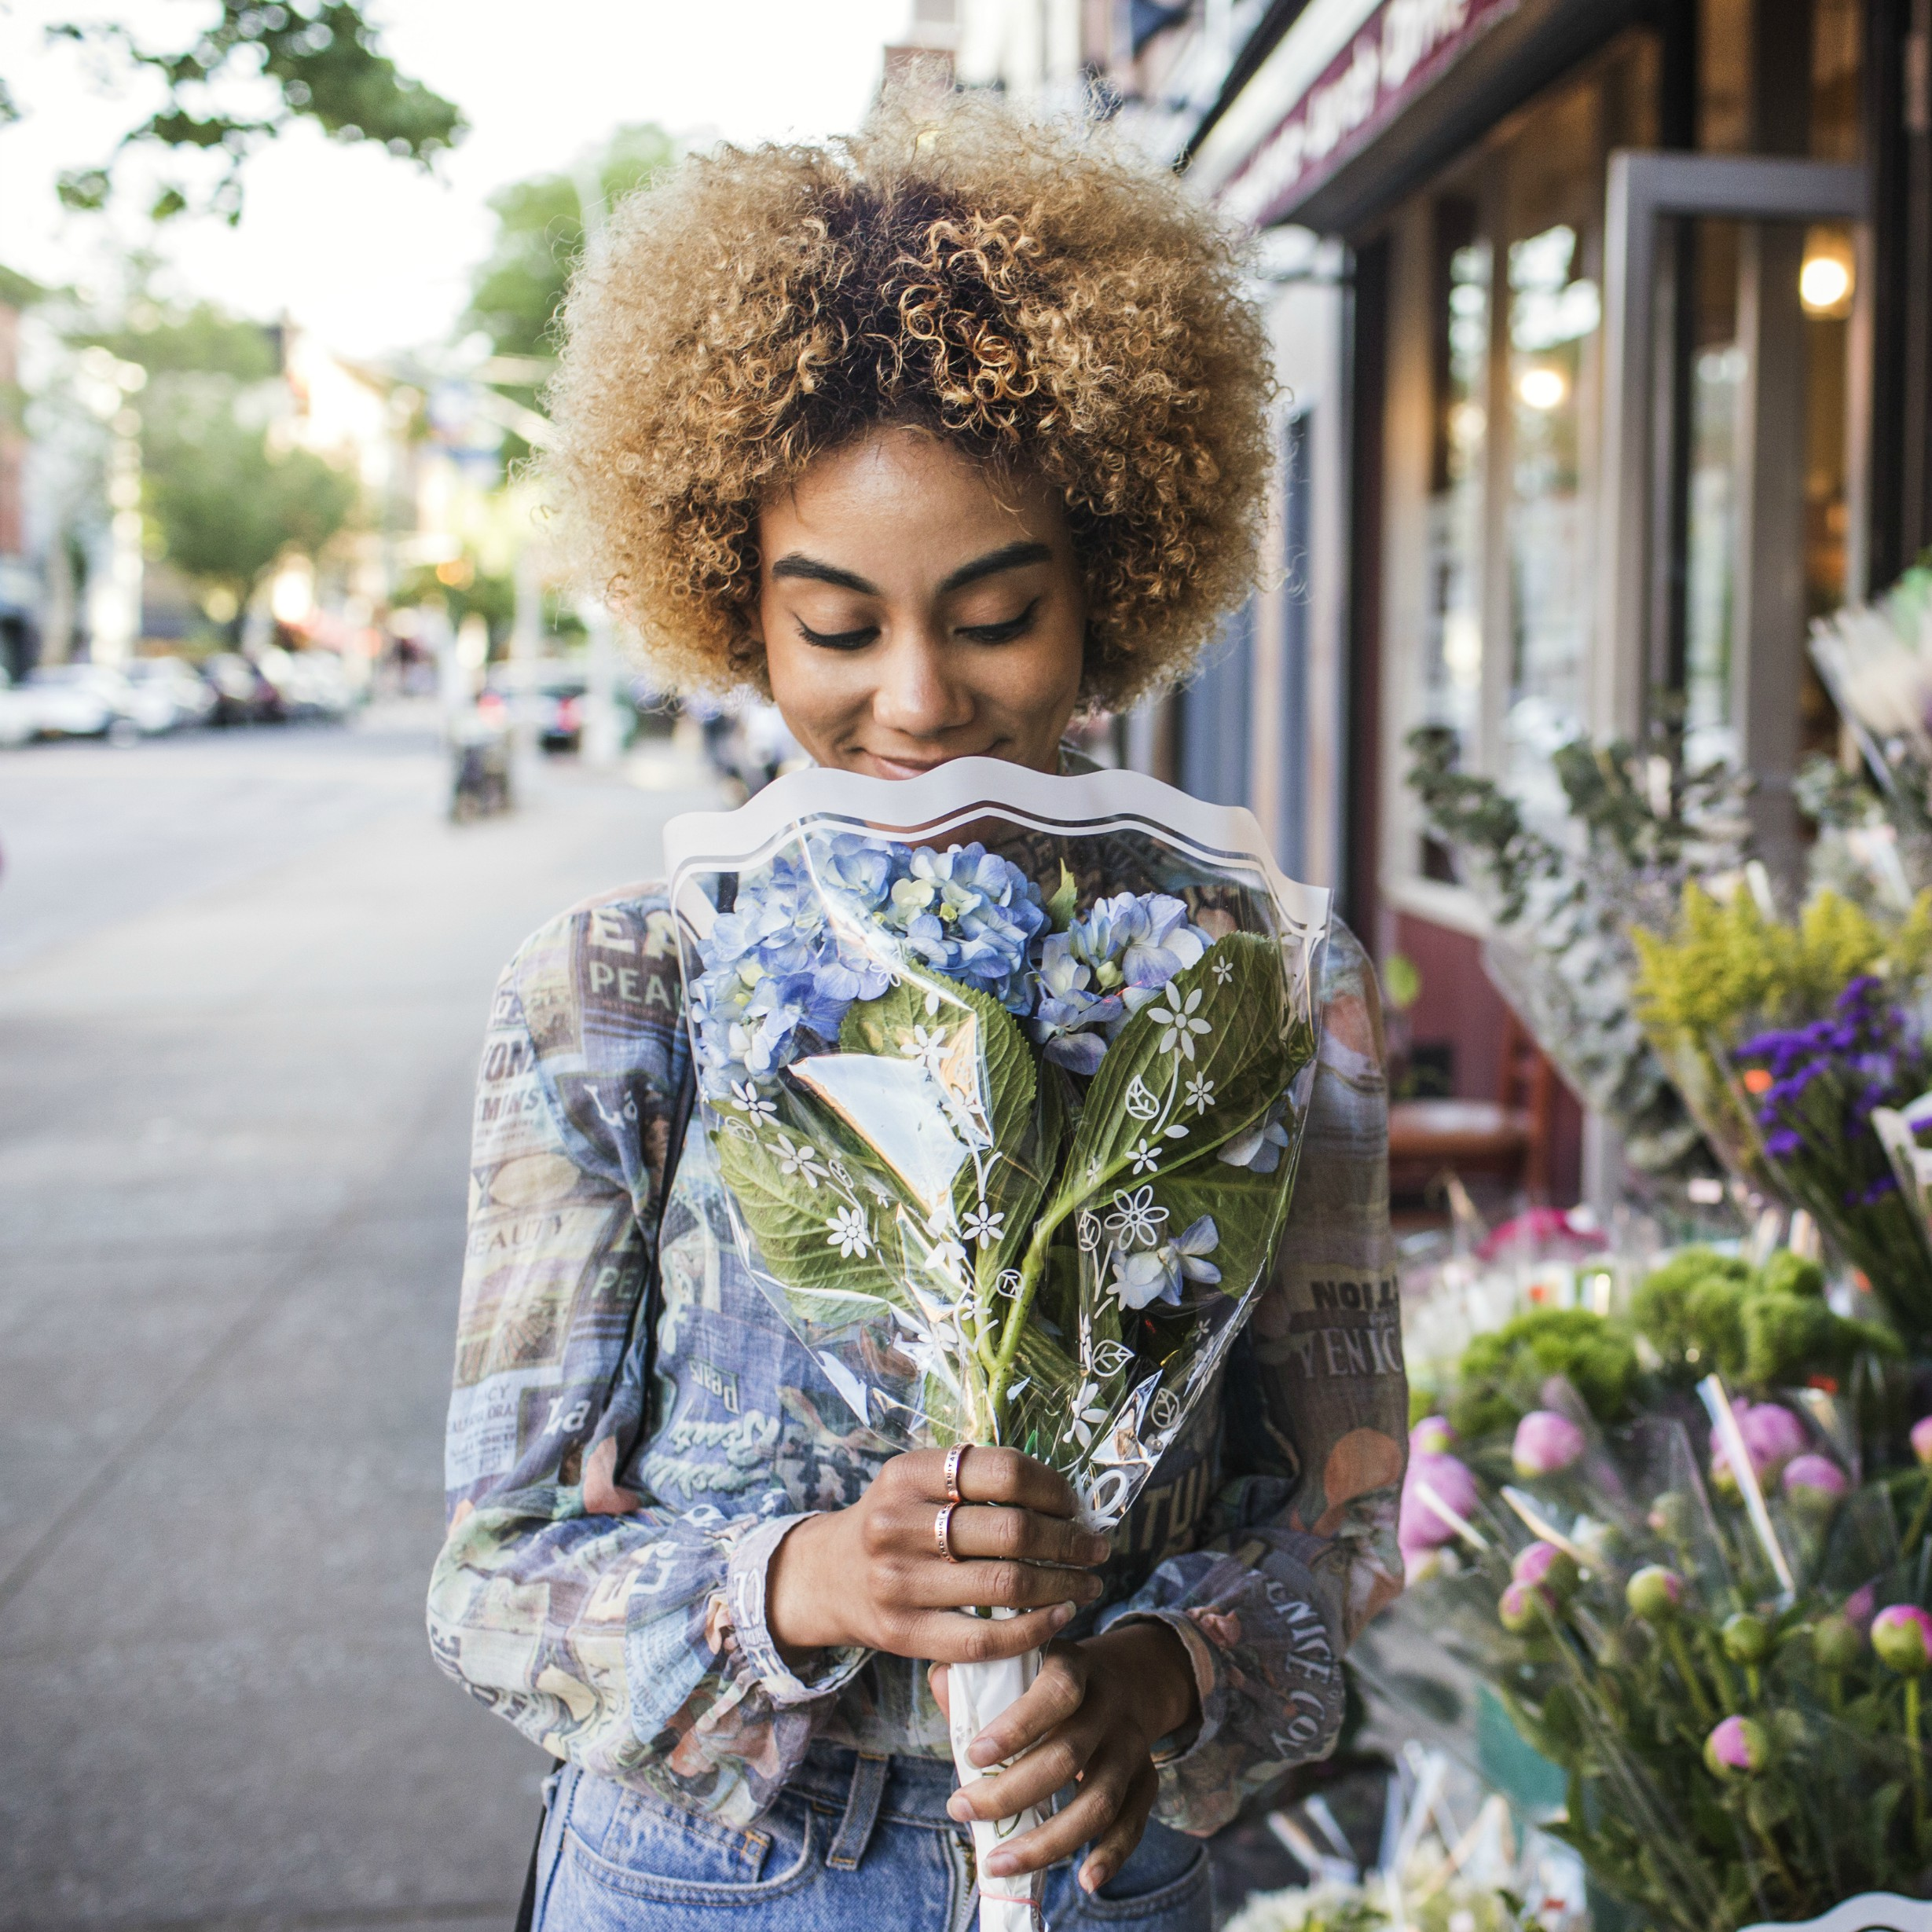 woman holding a bouquet of purple flowers and smelling